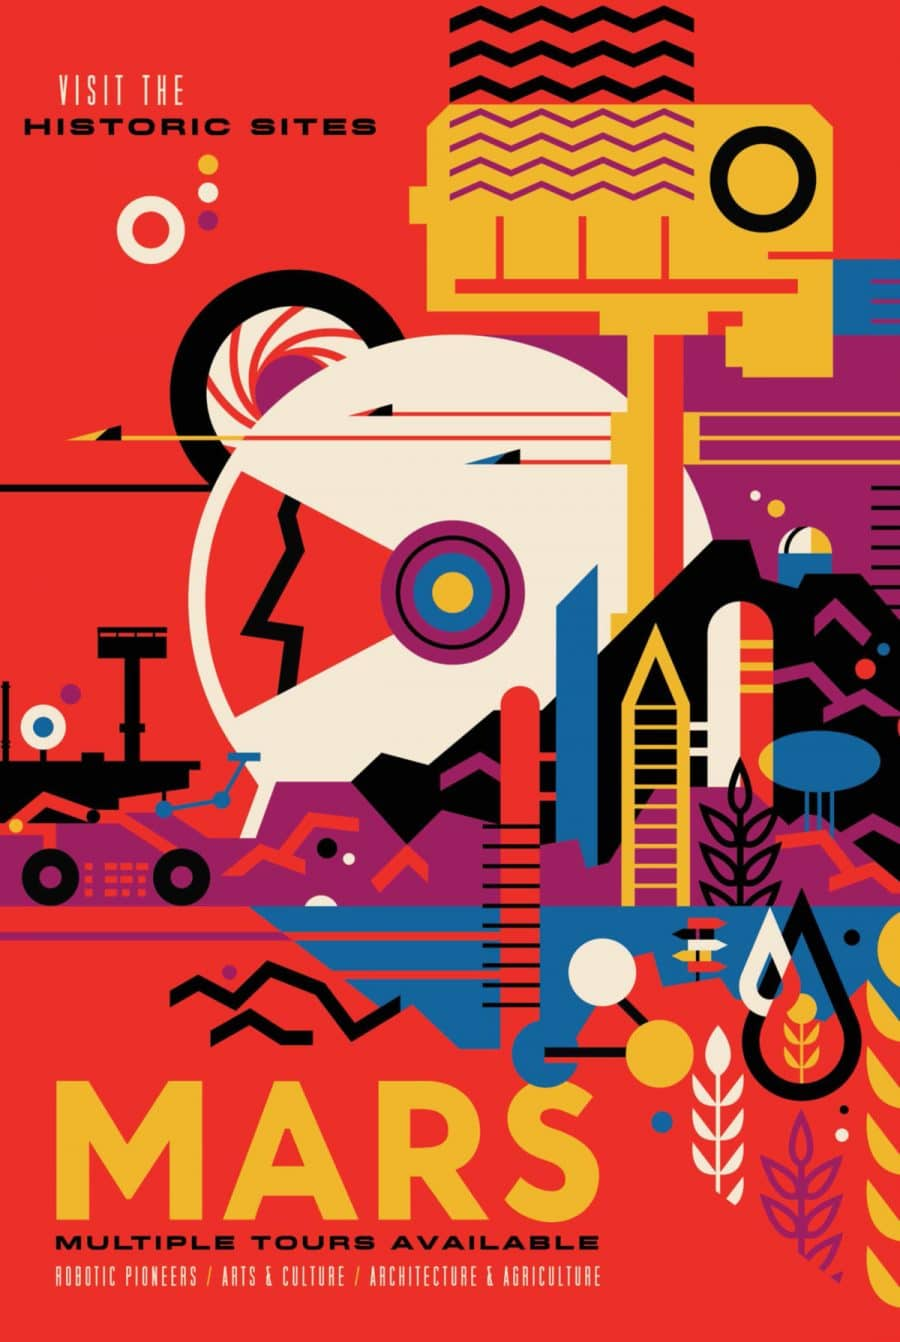 NASA Mars Exploration Program Visions of the Future Poster Series Designed by JPL